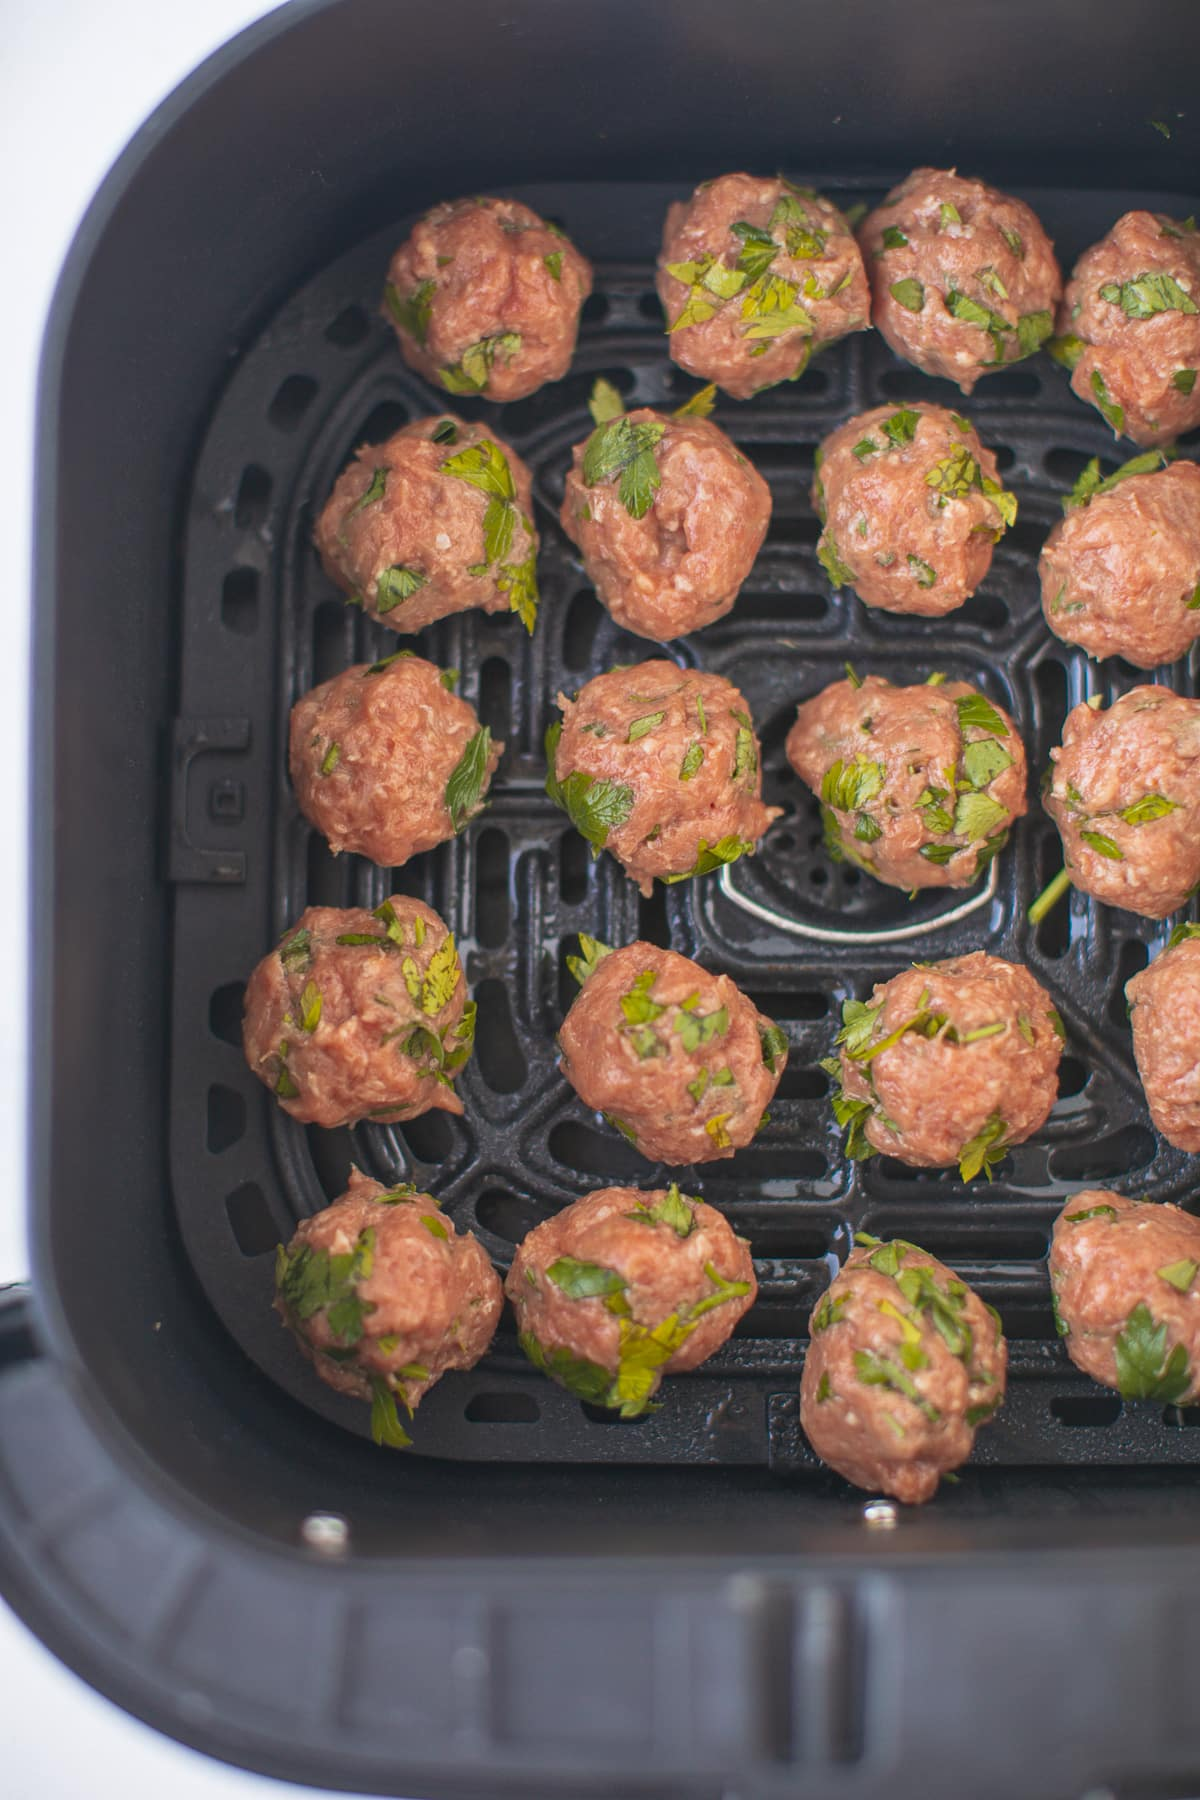 uncooked meatballs in the basket of an air fryer